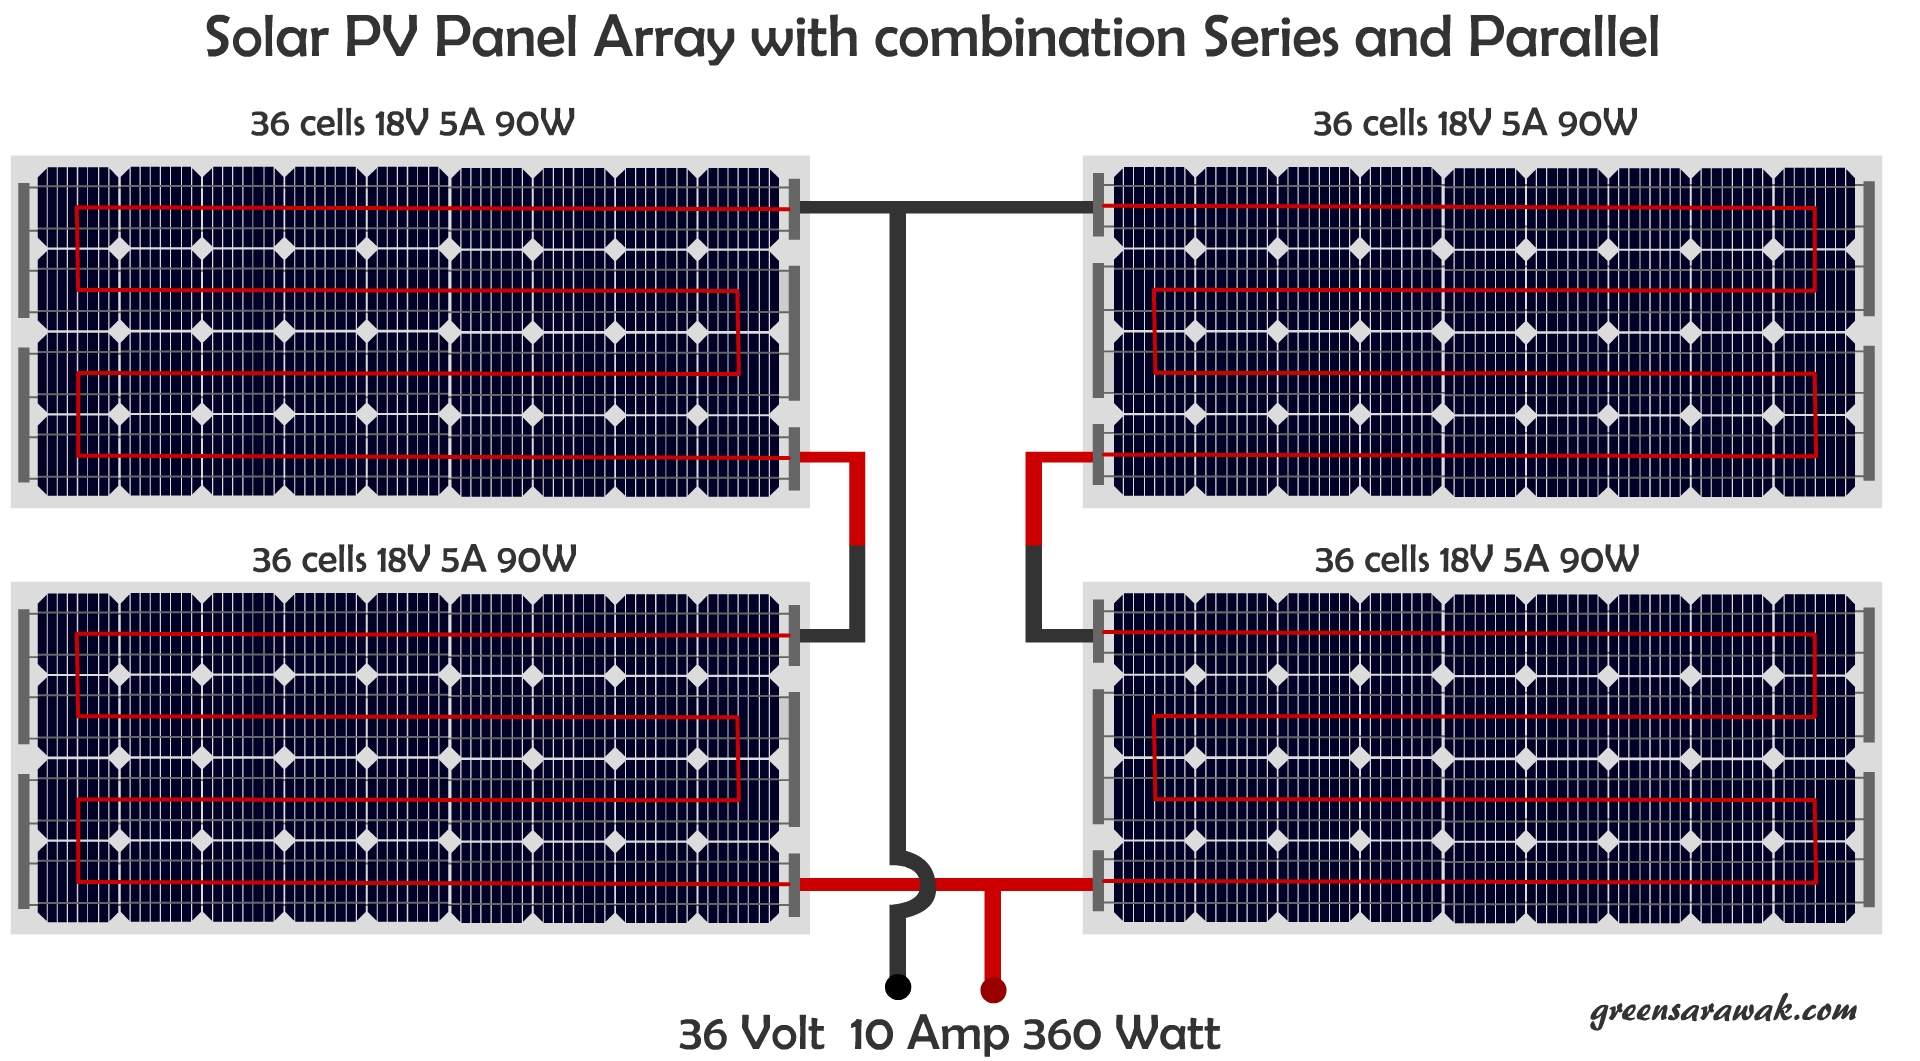 solar panel array wiring diagram ford fiesta mk4 stereo series and parallel marine practices